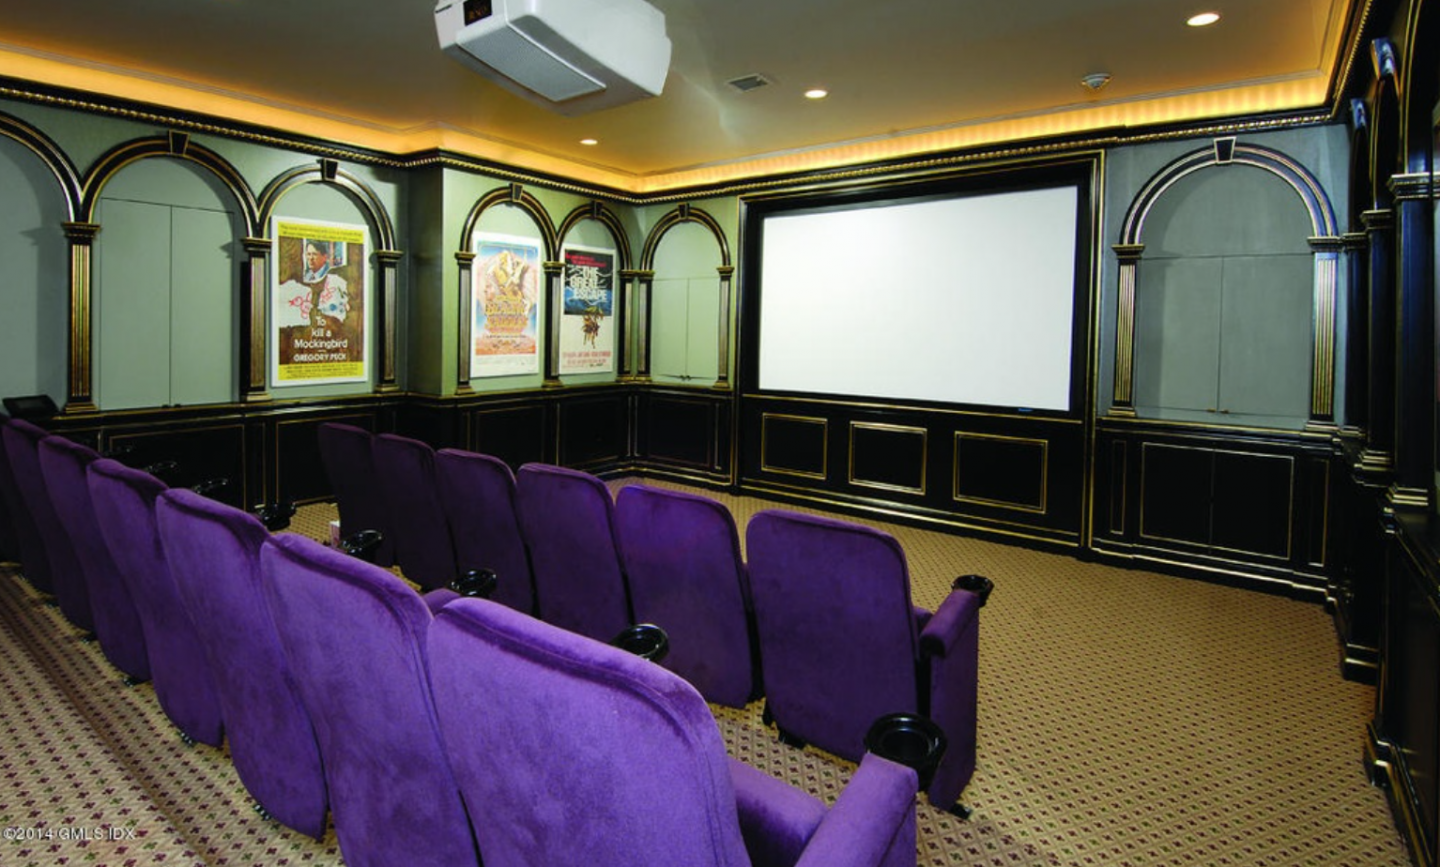 Home theater with lavender seats